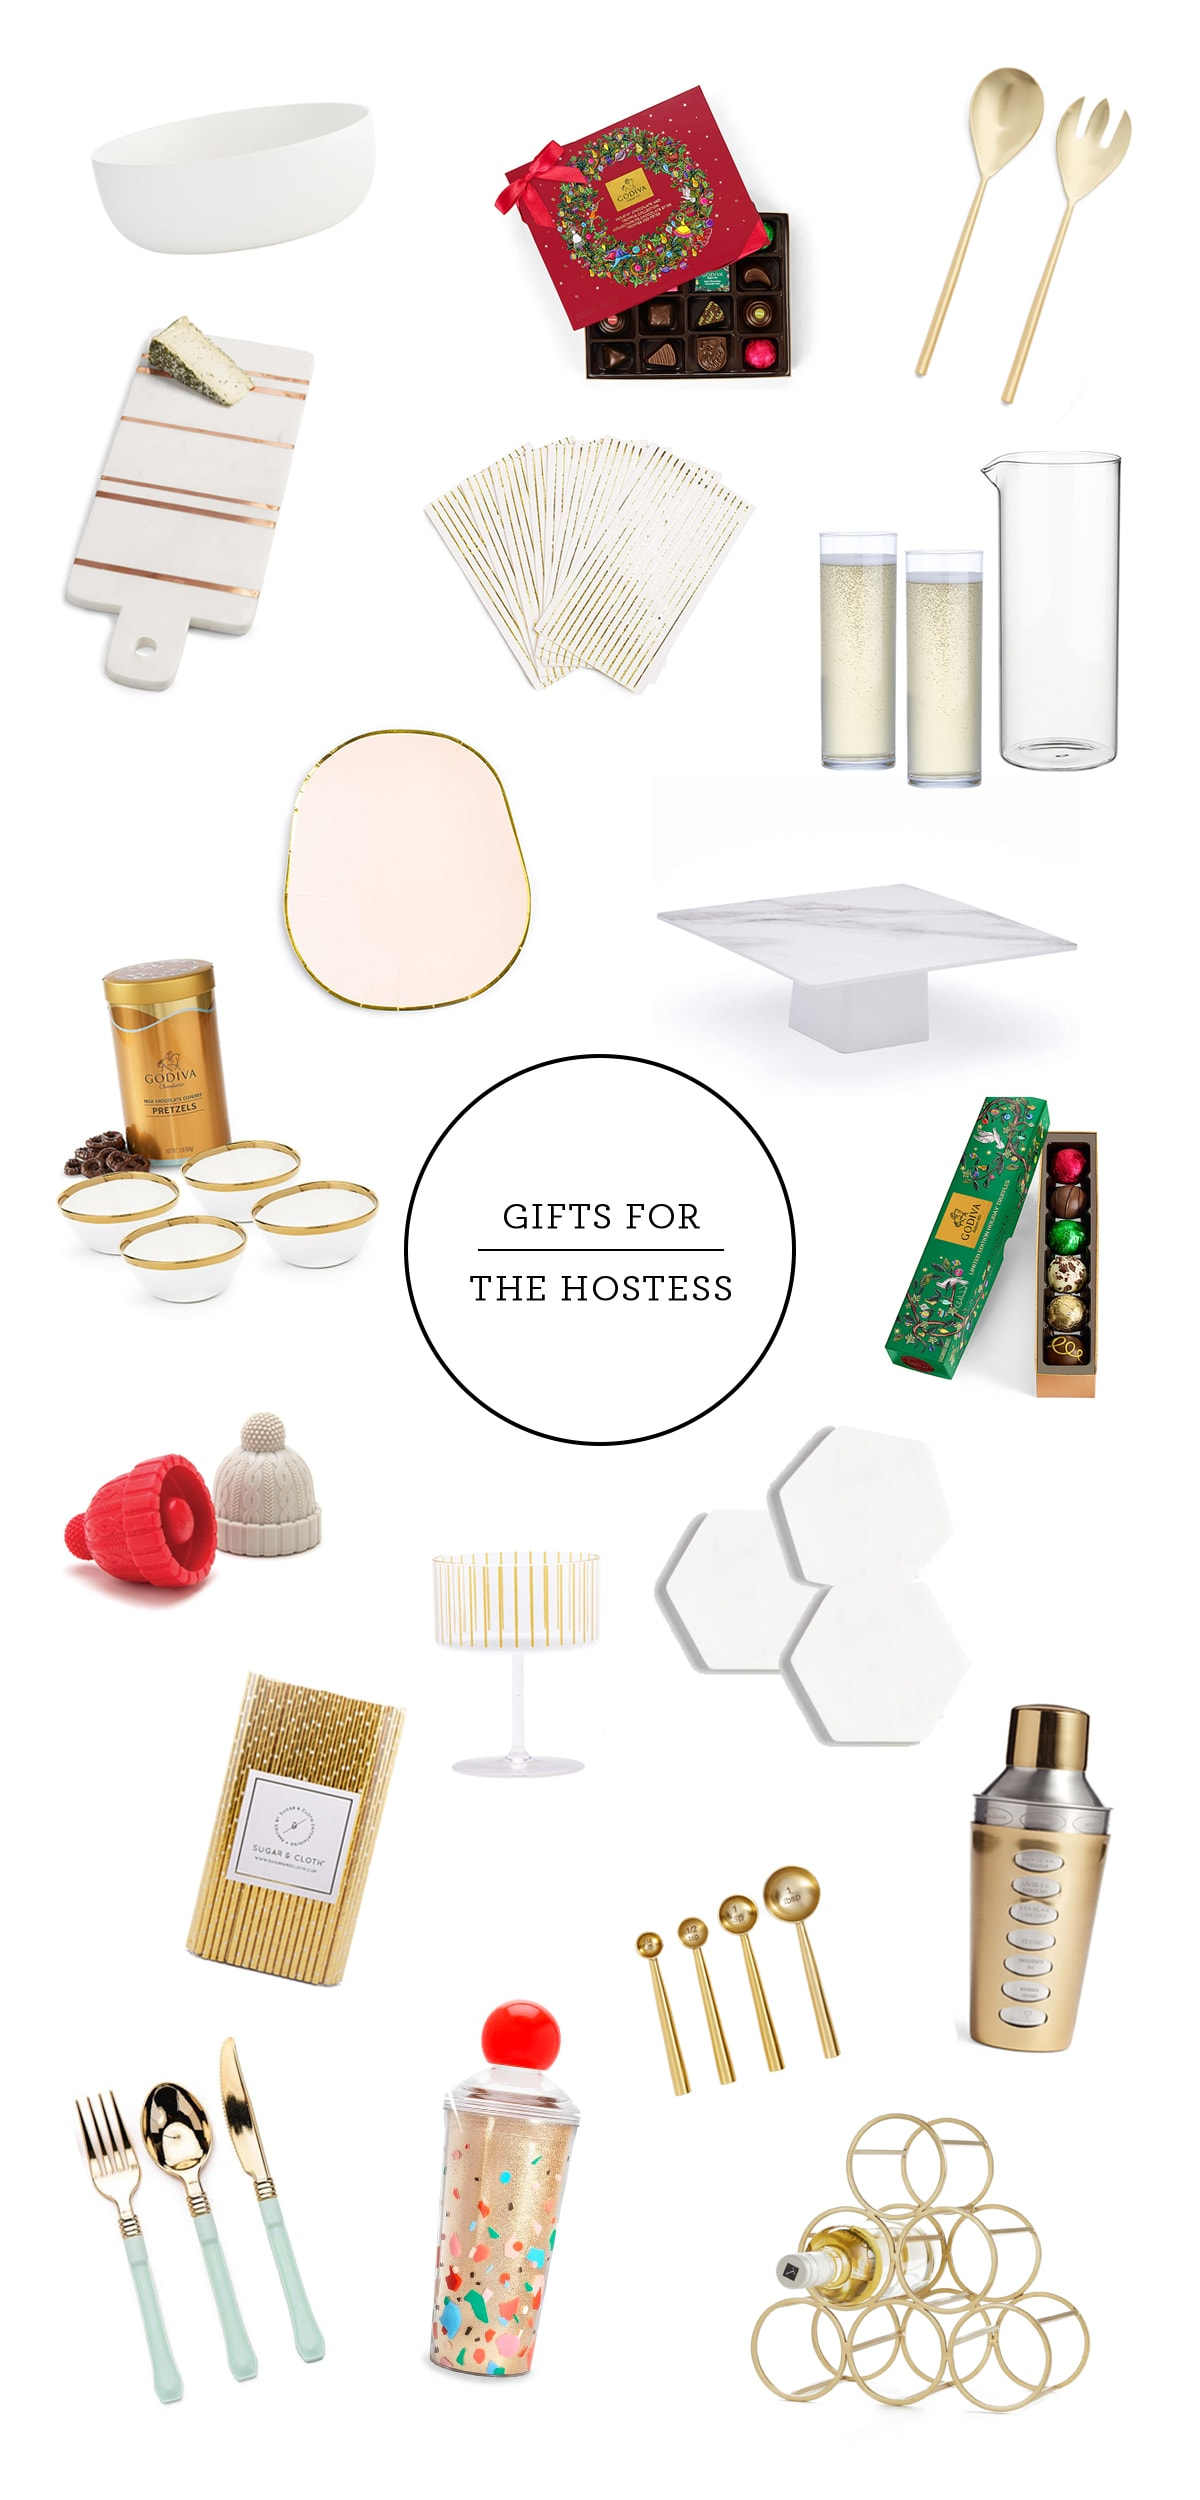 Hostess Gift Guide by Houston lifestyle blogger Ashley Rose of Sugar and Cloth -- #giftguide #chirstmas #entertaining #holidayentertaining #presents